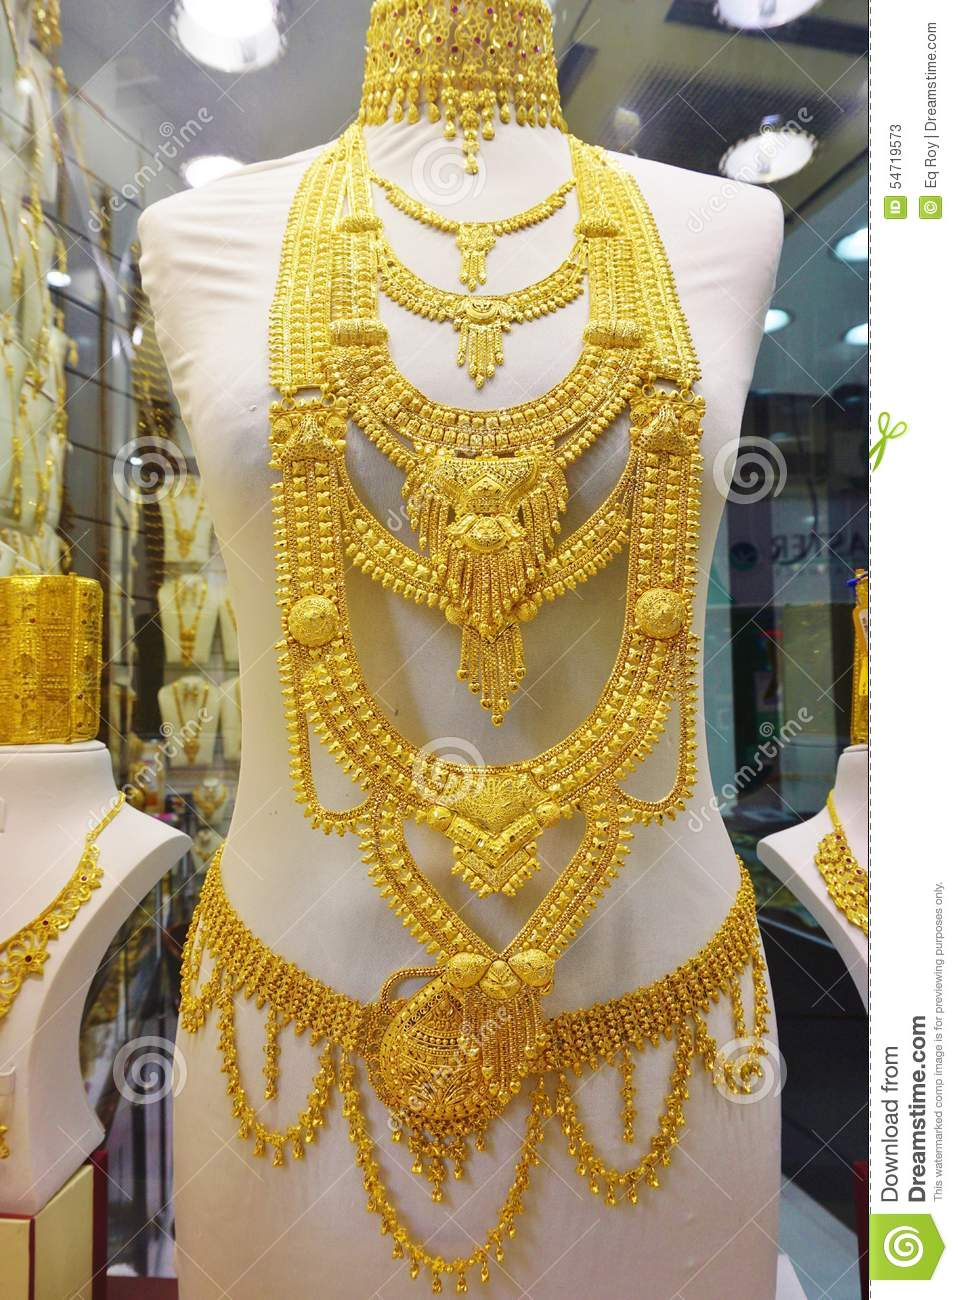 Gold Jewelry At The Dubai Gold Souk Editorial Stock Photo